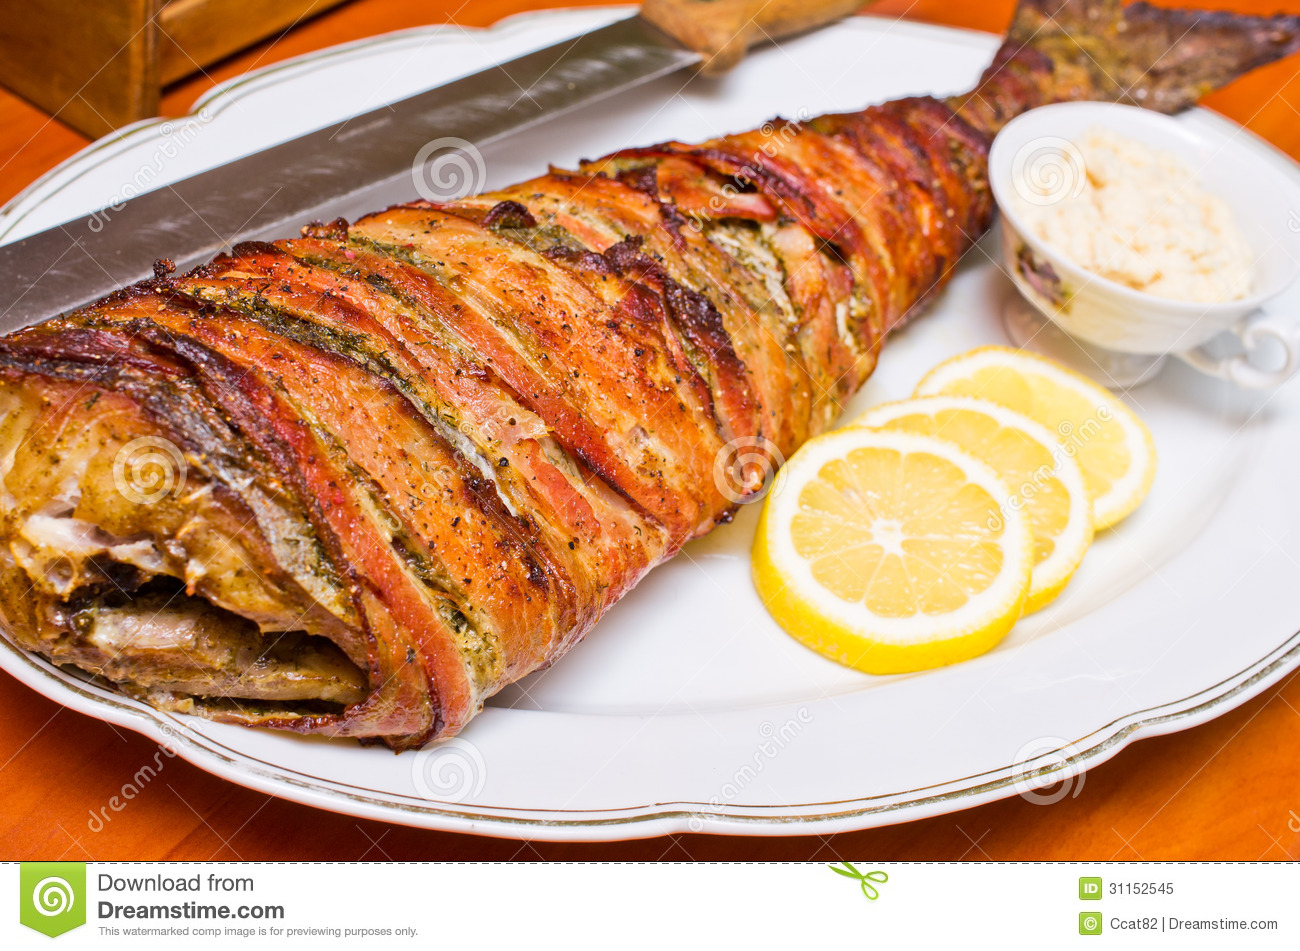 Fish Wrapped In Bacon Royalty Free Stock Photo - Image: 31152545